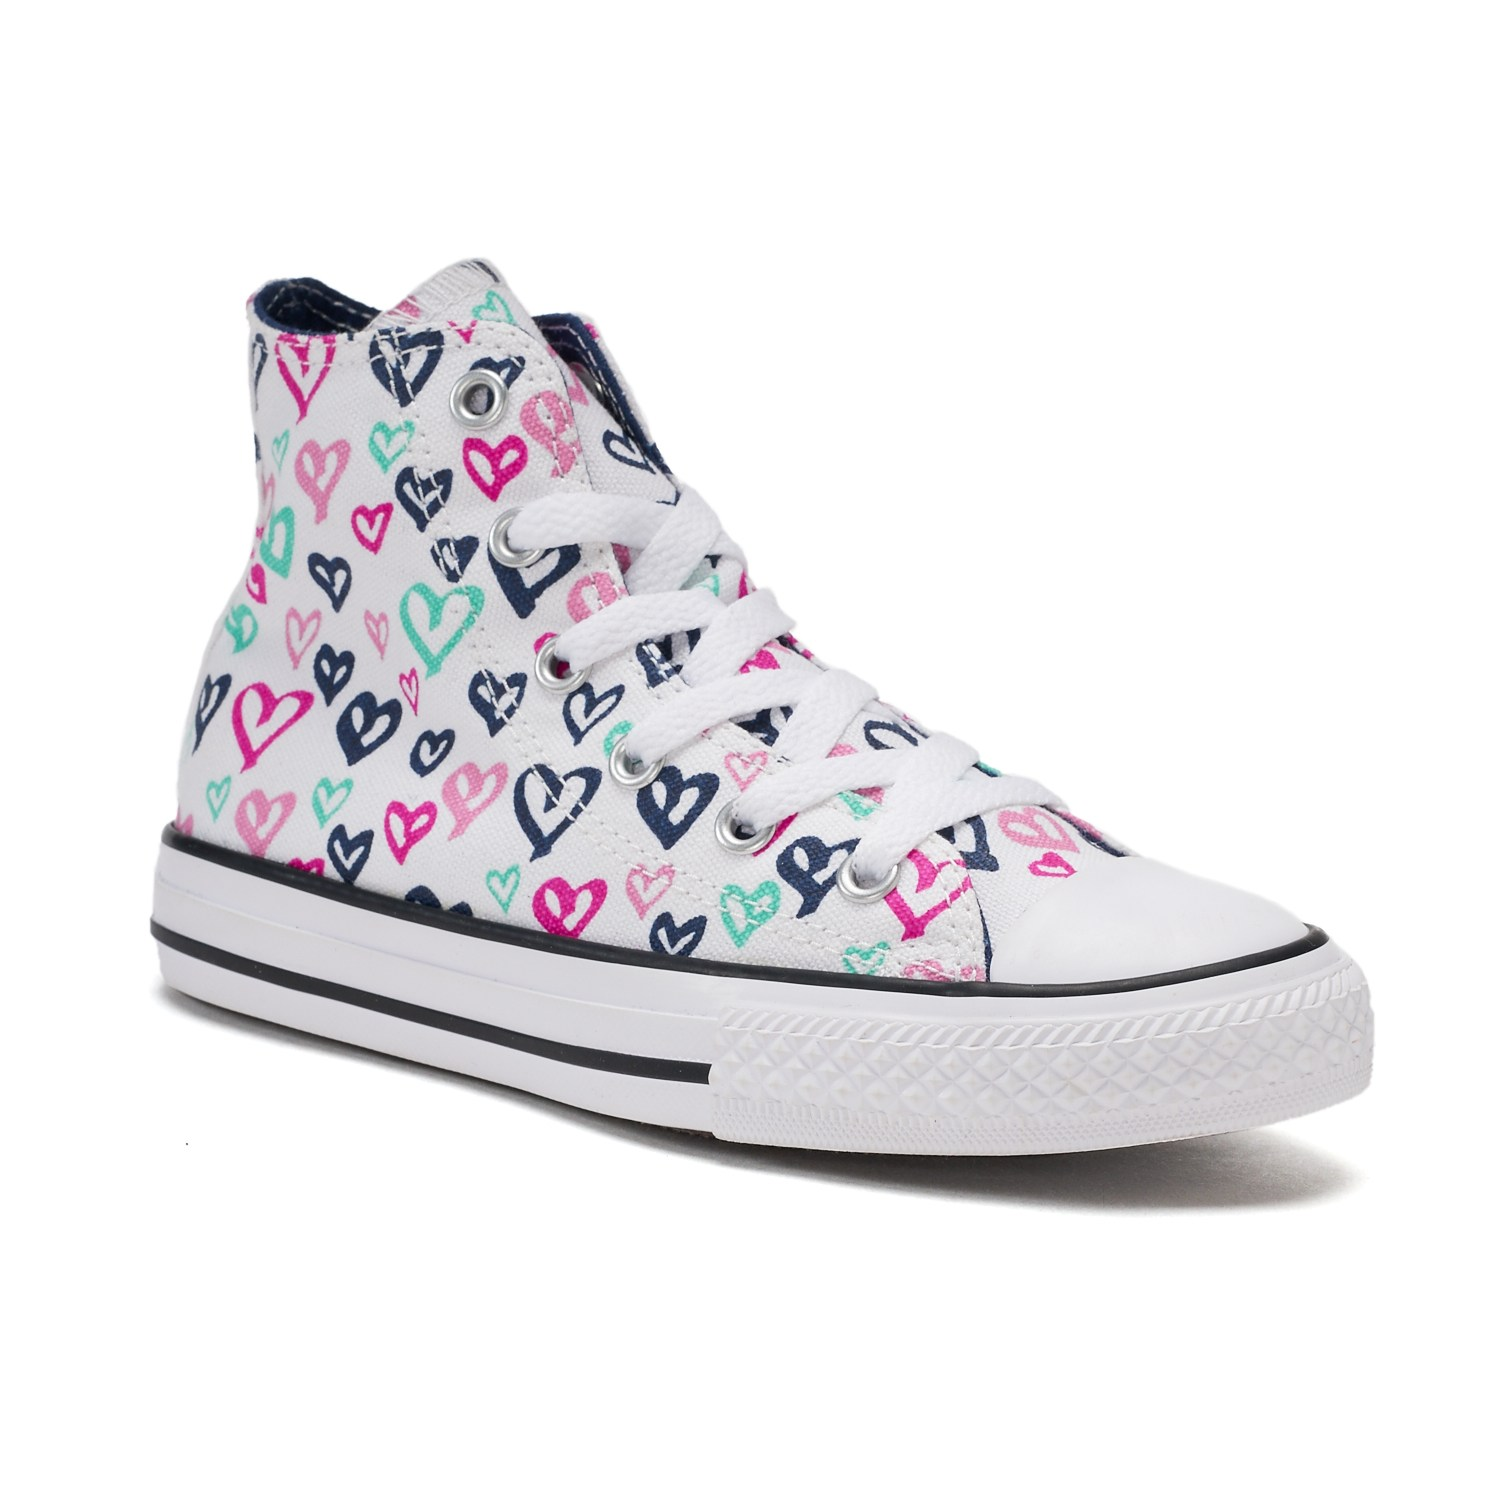 Girls Converse Shoes girlsu0027 converse chuck taylor all star print high top sneakers MDKFTJW